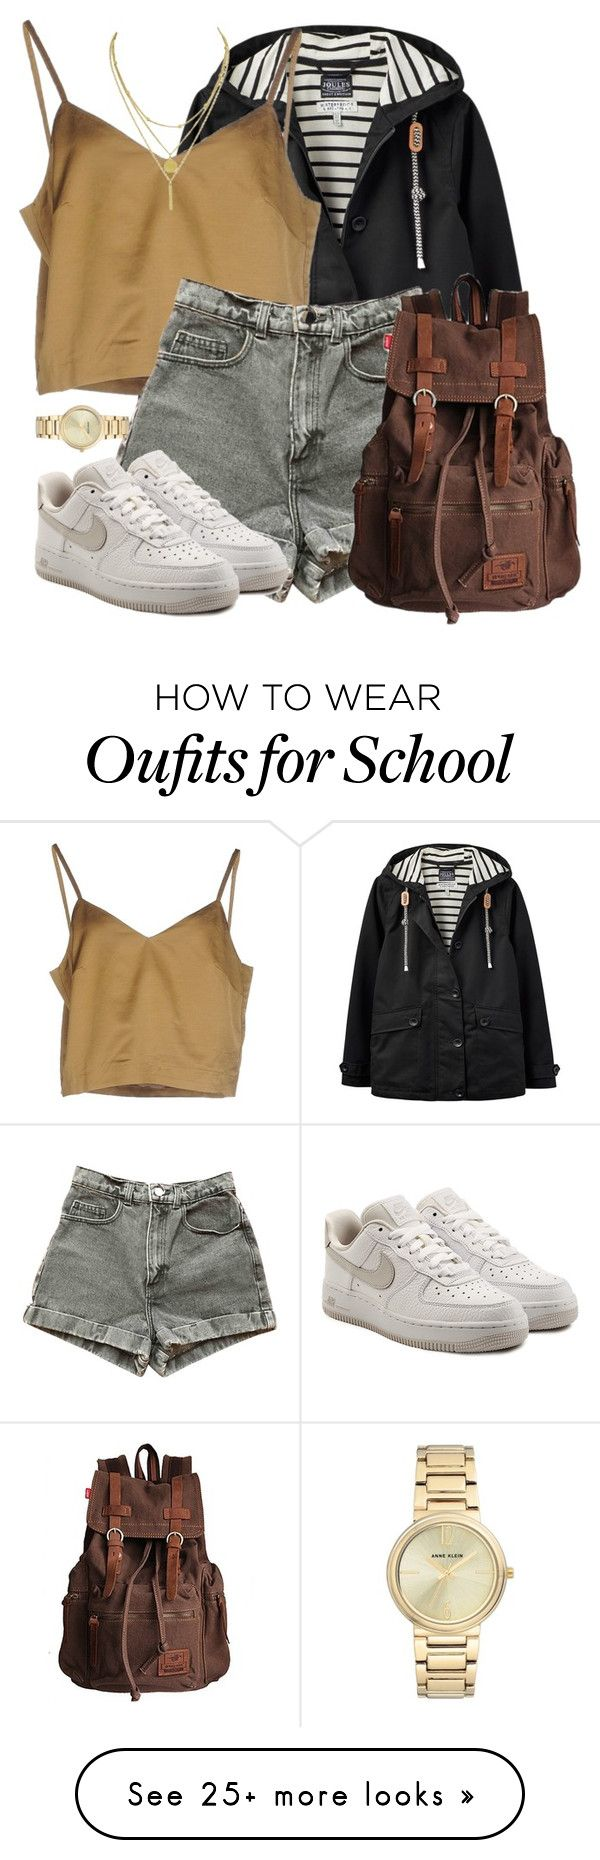 """Untitled #1119"" by cottxncandy on Polyvore featuring Joules, Erika Cavallini Semi-Couture, American Apparel, NIKE and Anne Klein"